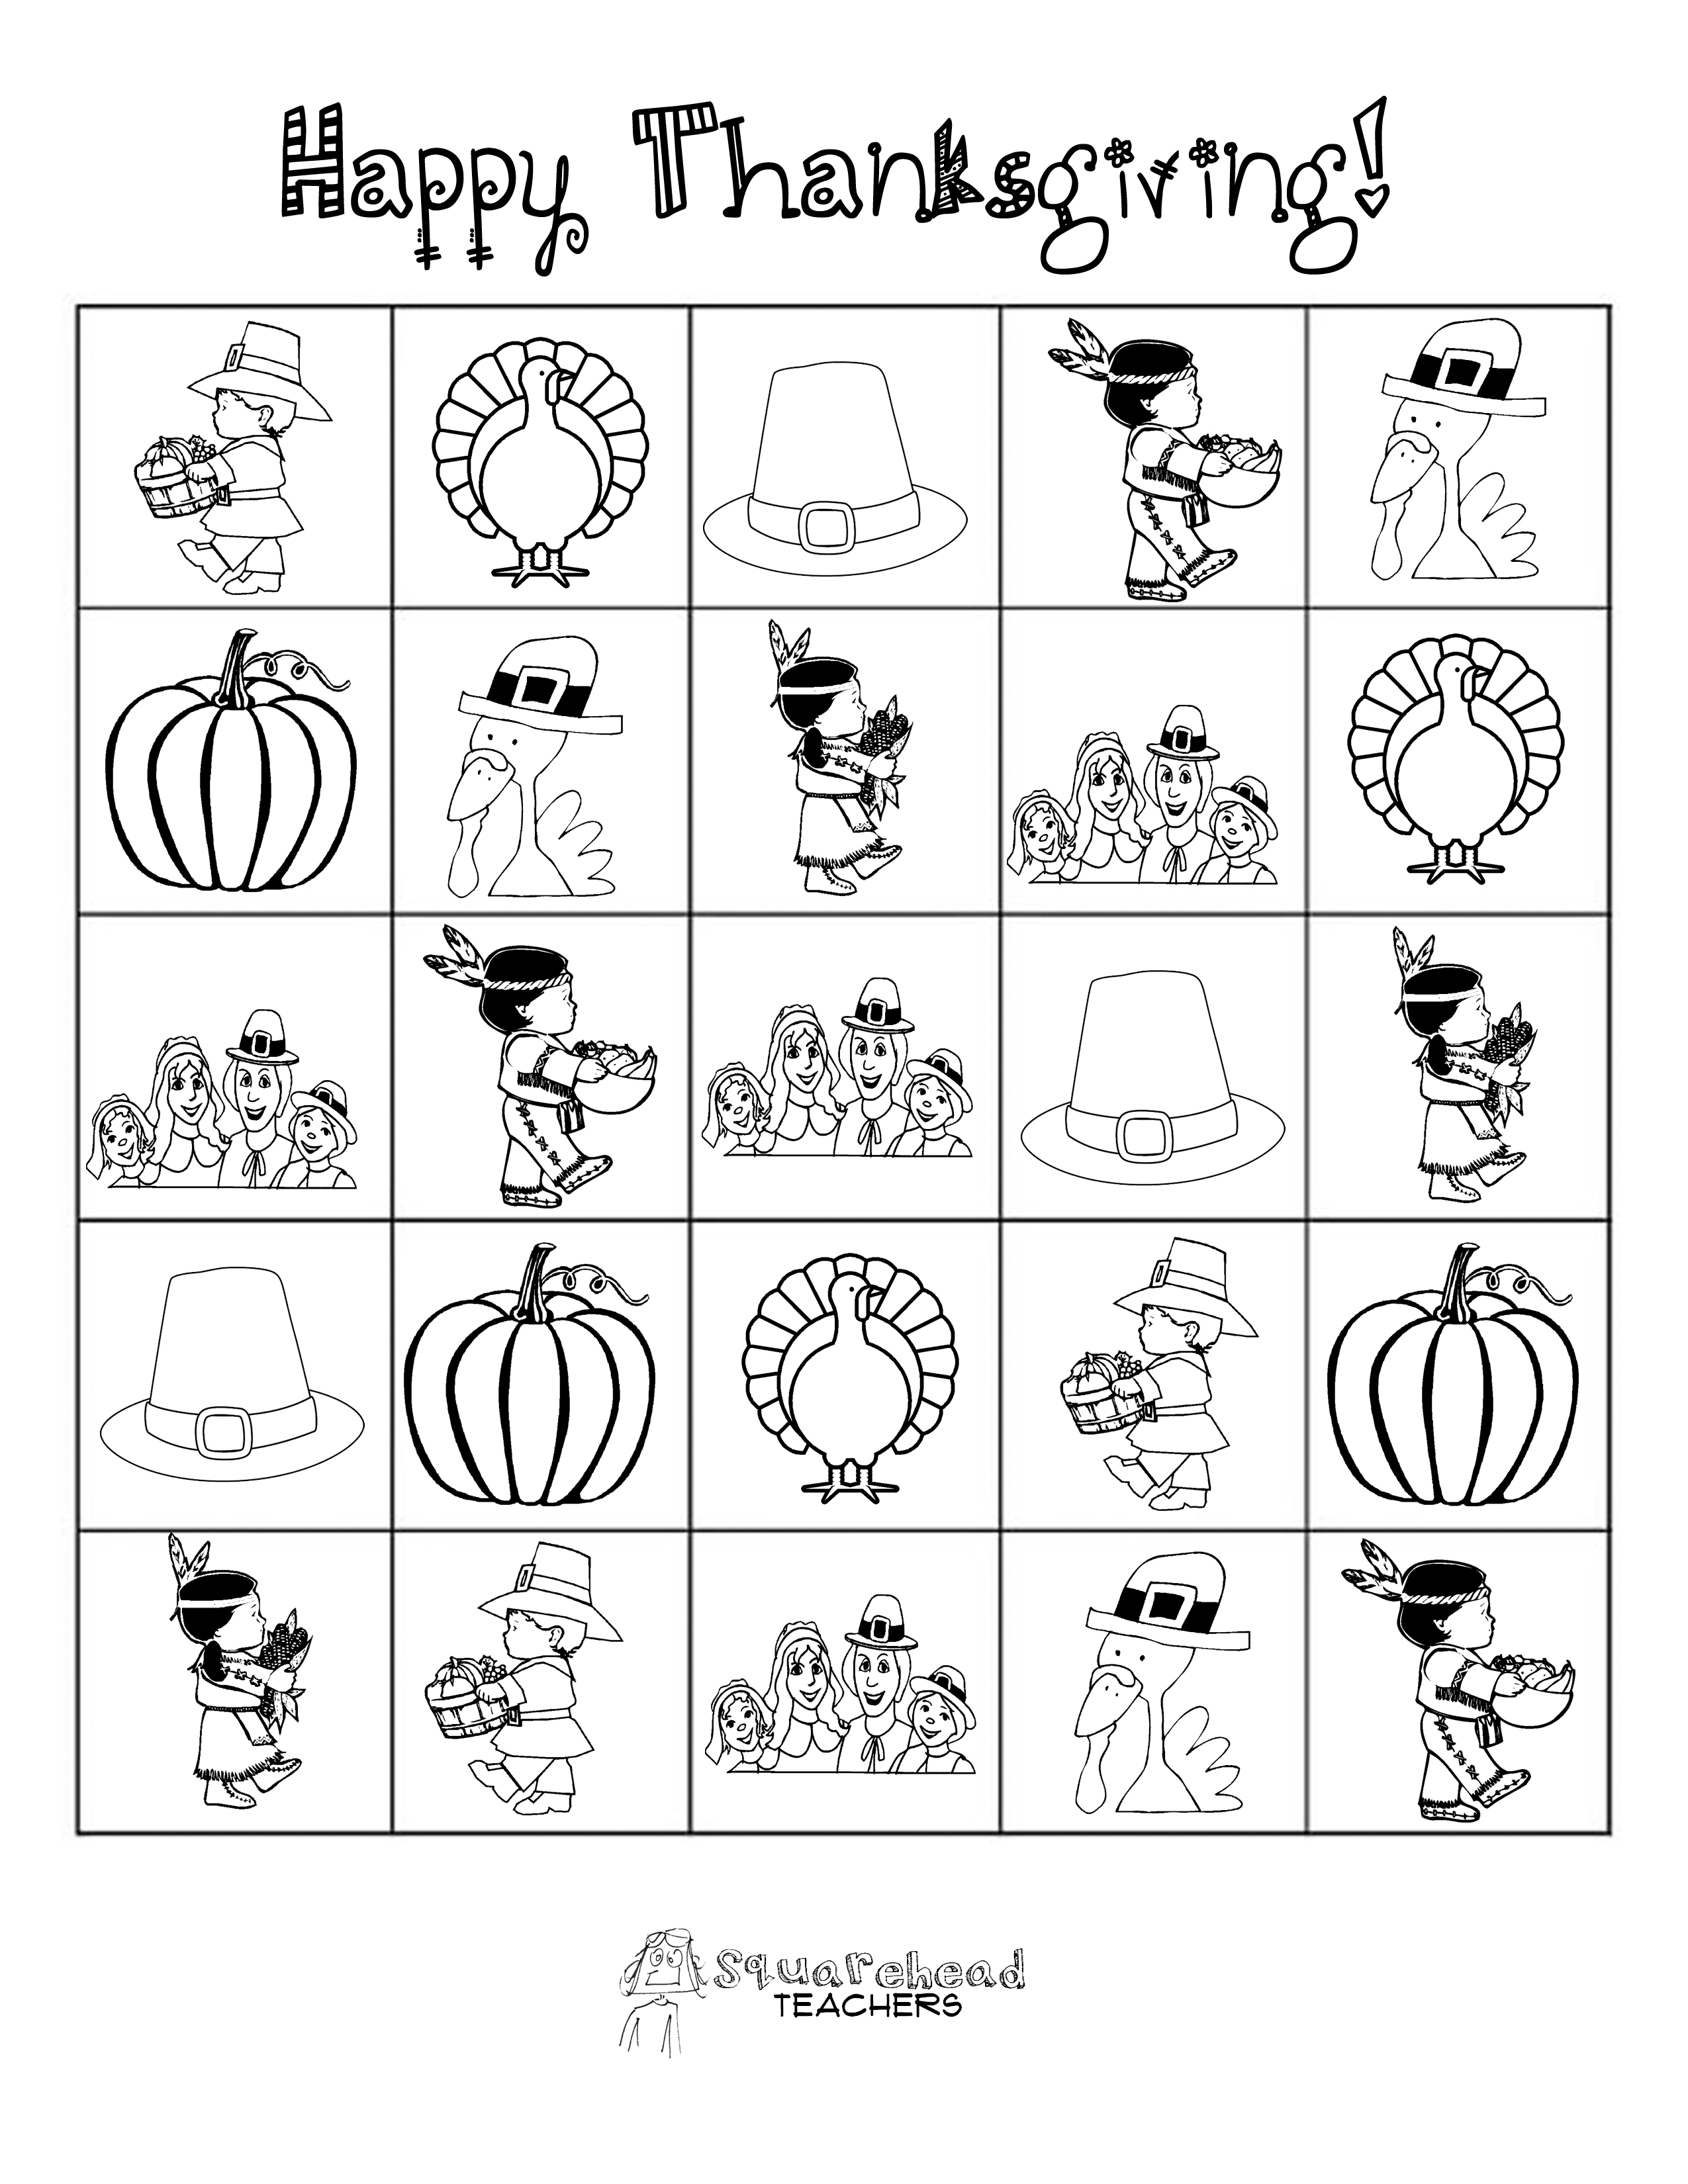 Thanksgiving esl activities adults Mat need